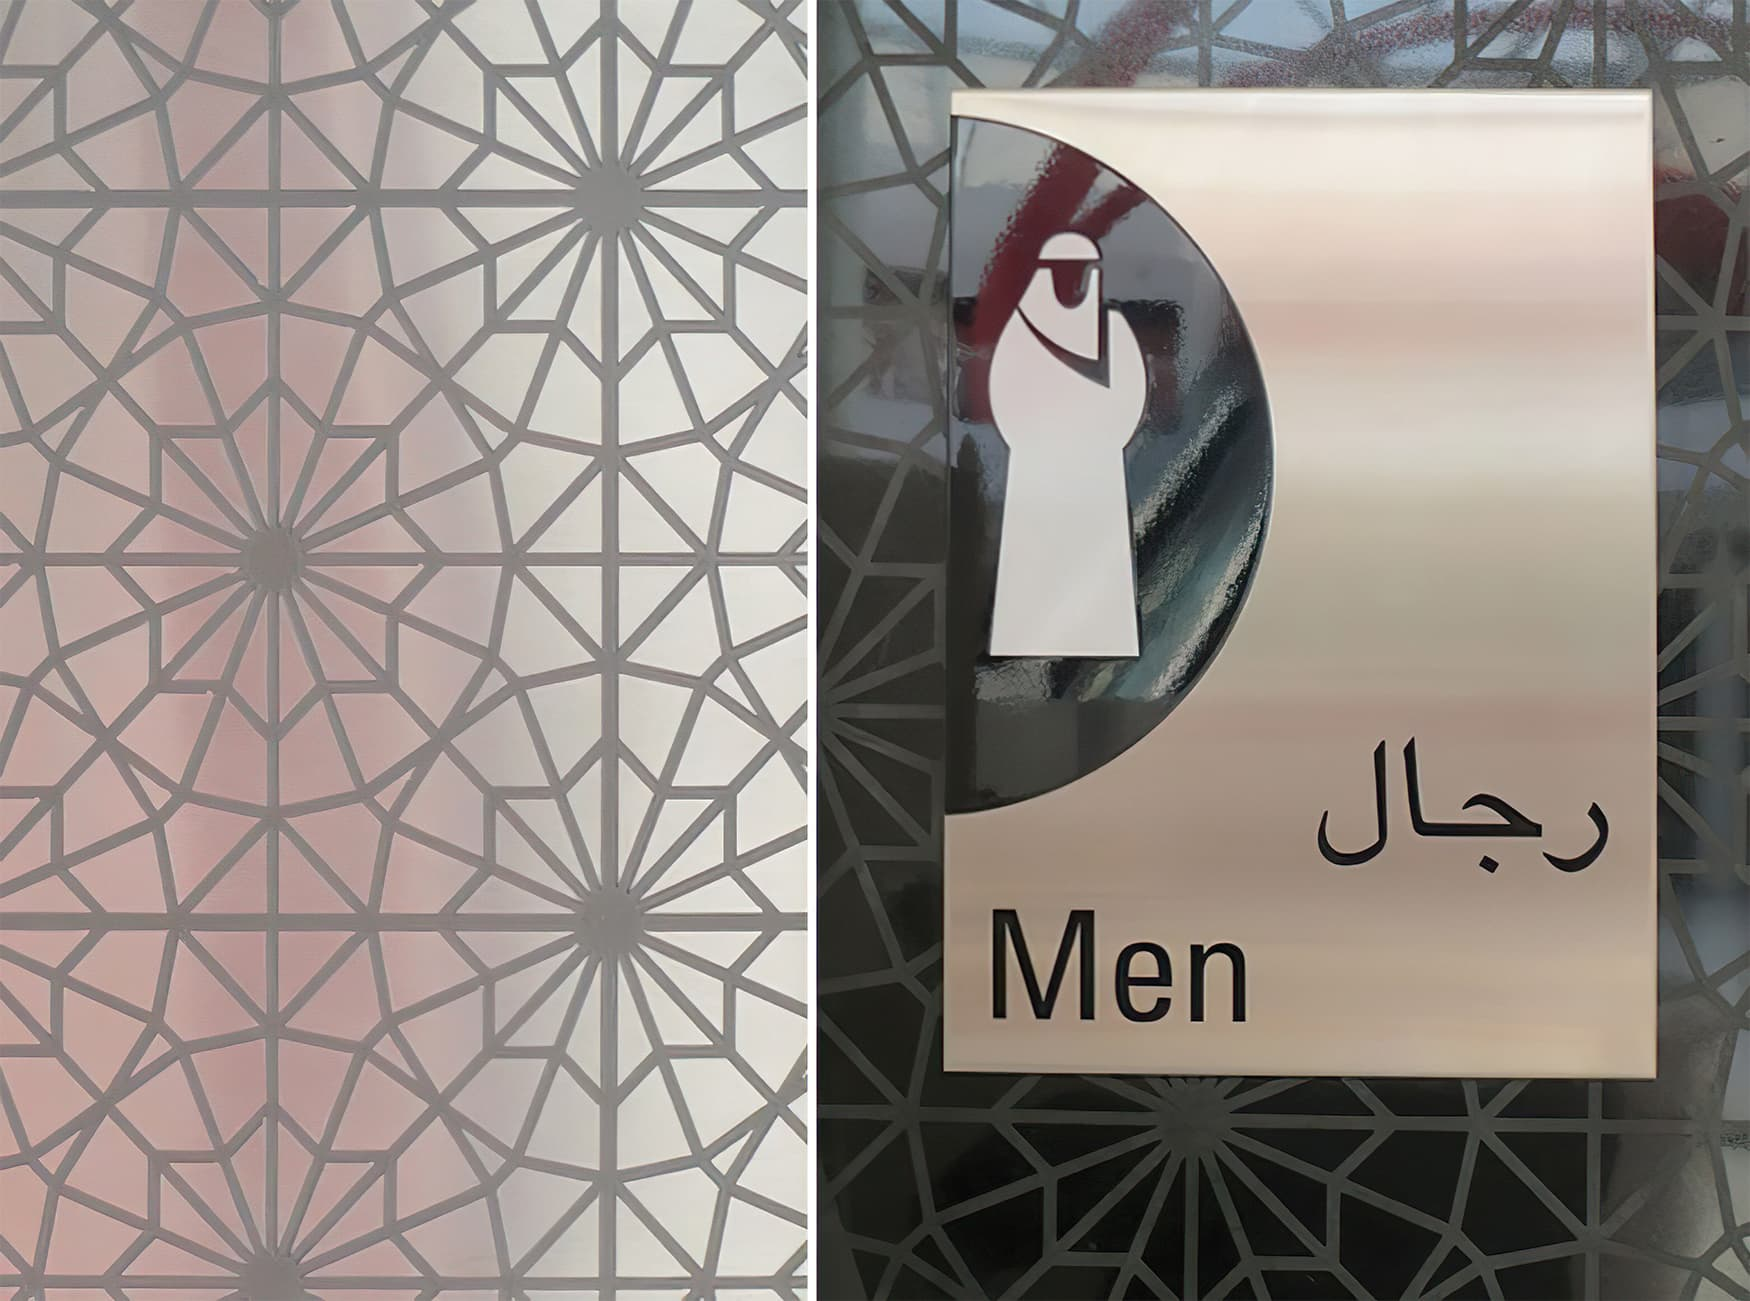 Ferrari World in Abu Dhabi in the United Arab Emirates. Project Pattern and Restroom Plaque